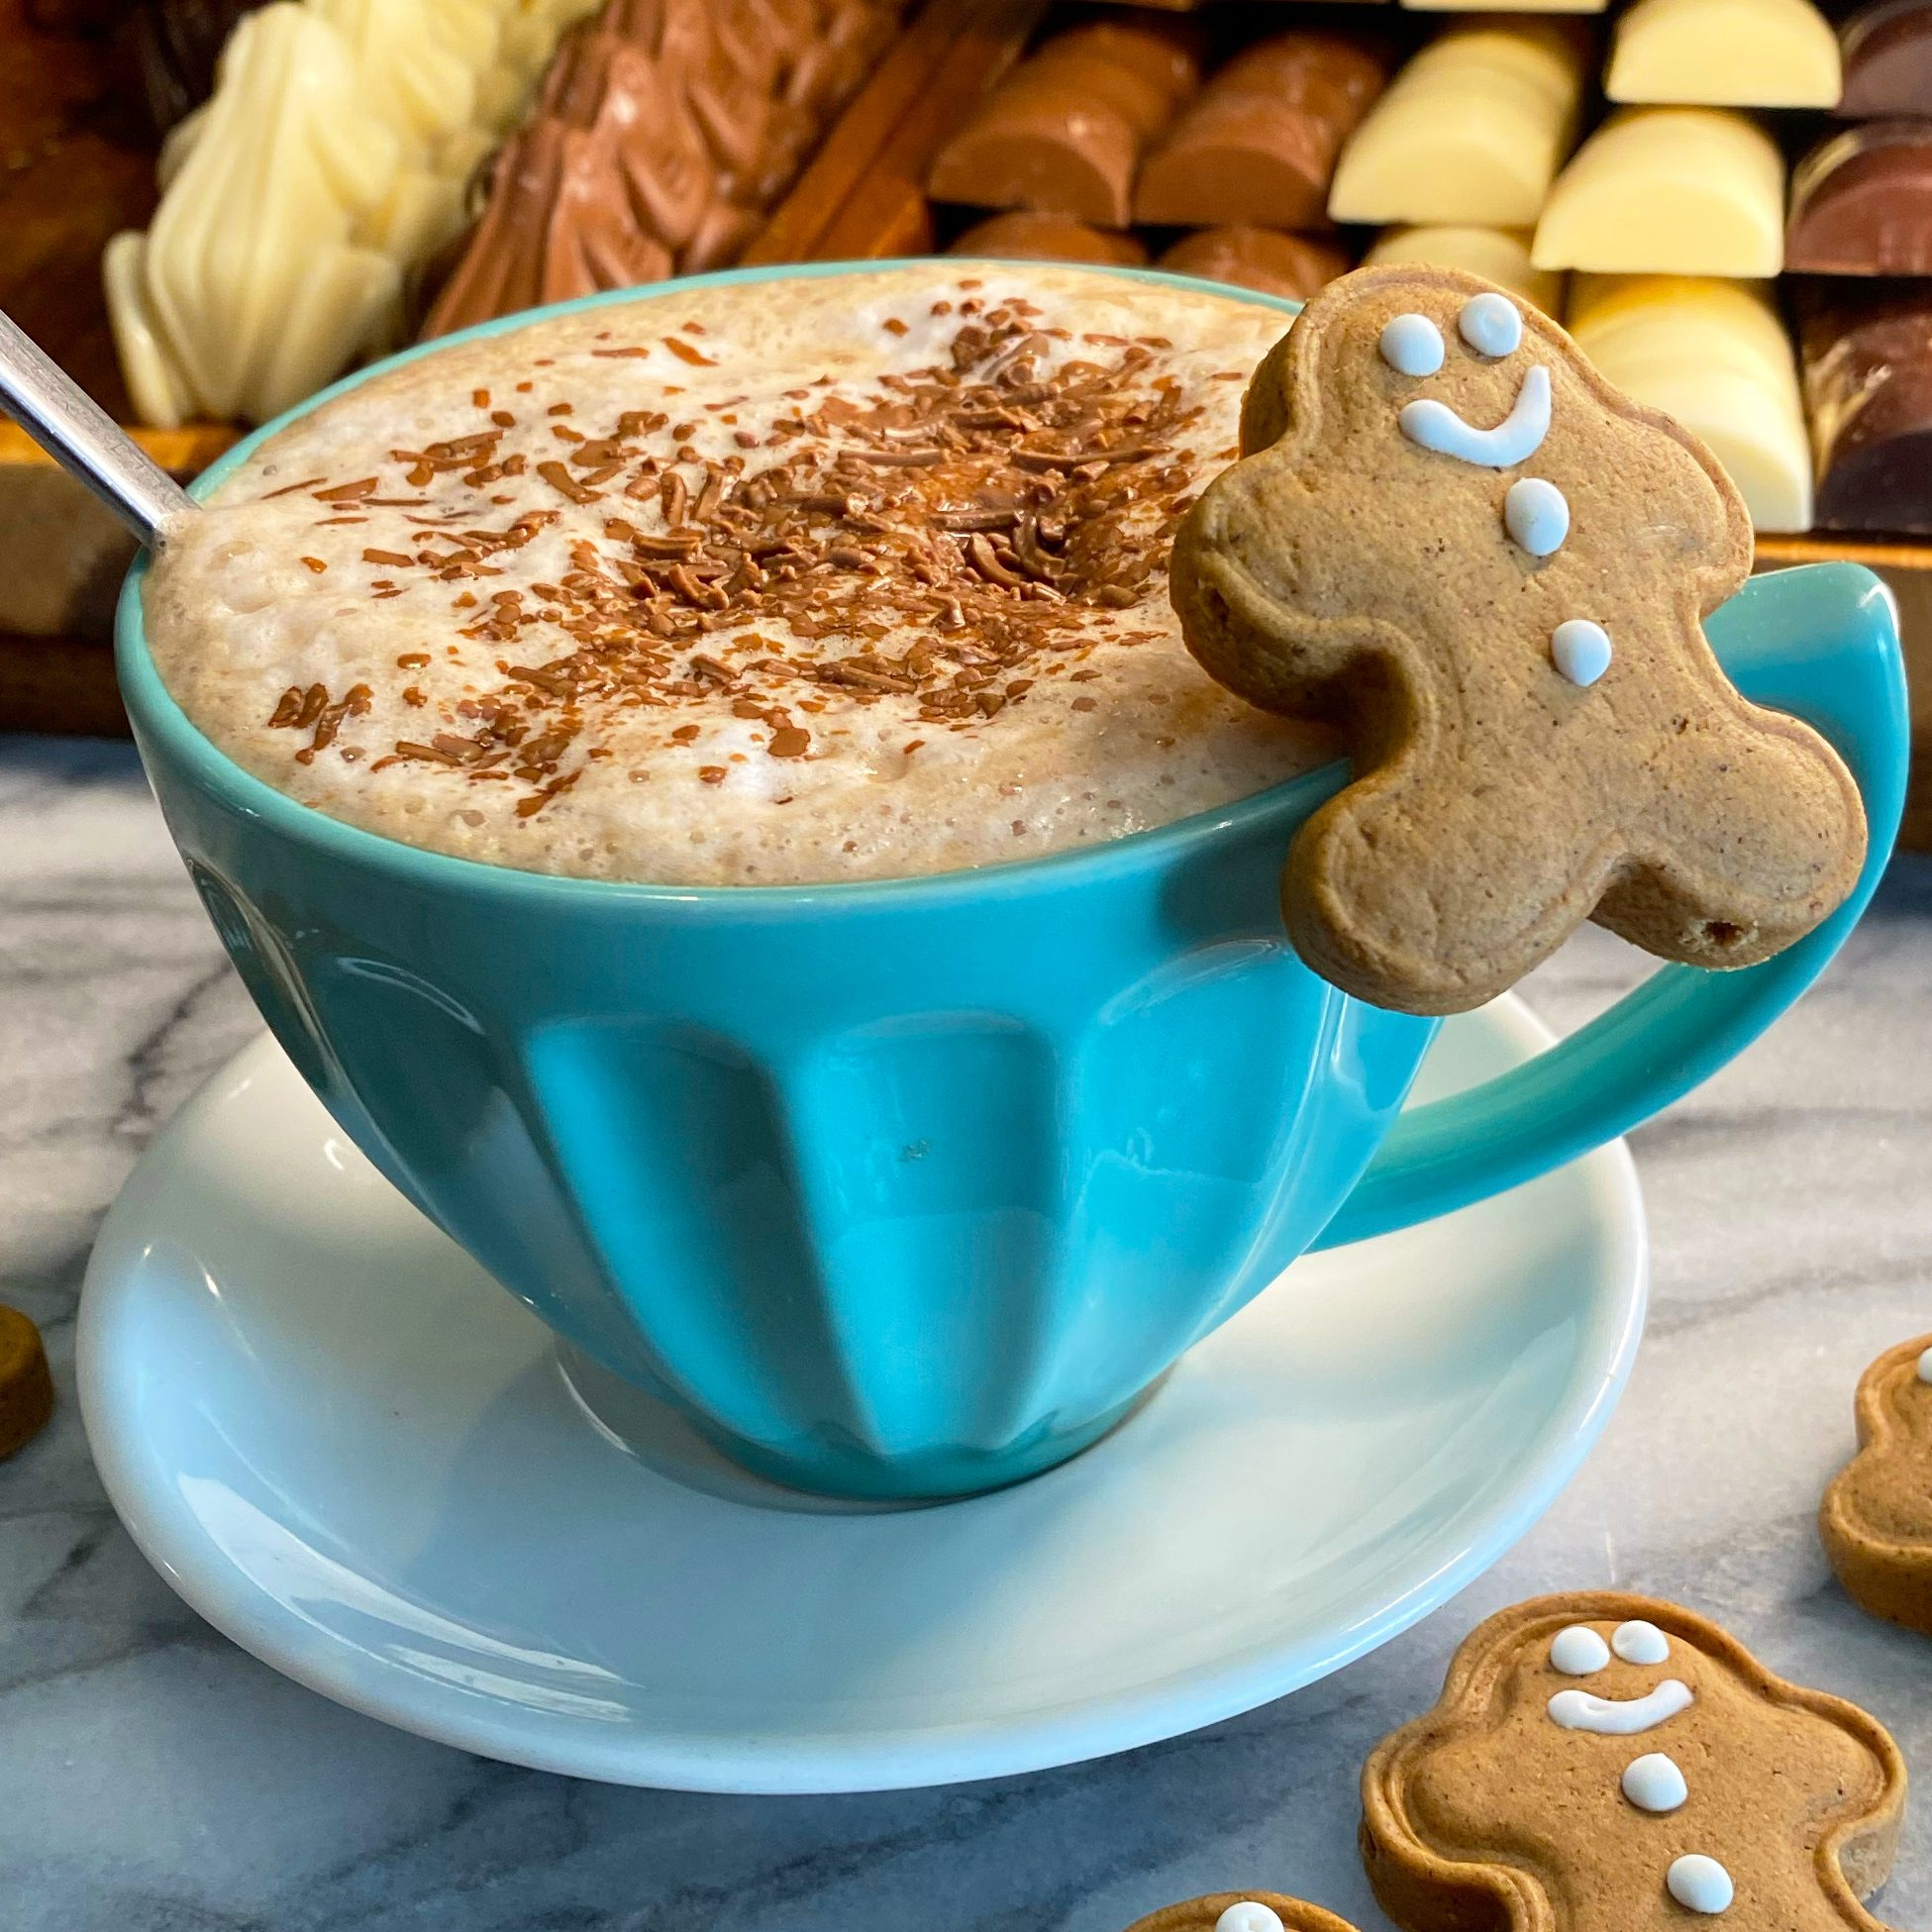 gingerbread hot chocolate in mug with mini gingerbread biscuits surrounding